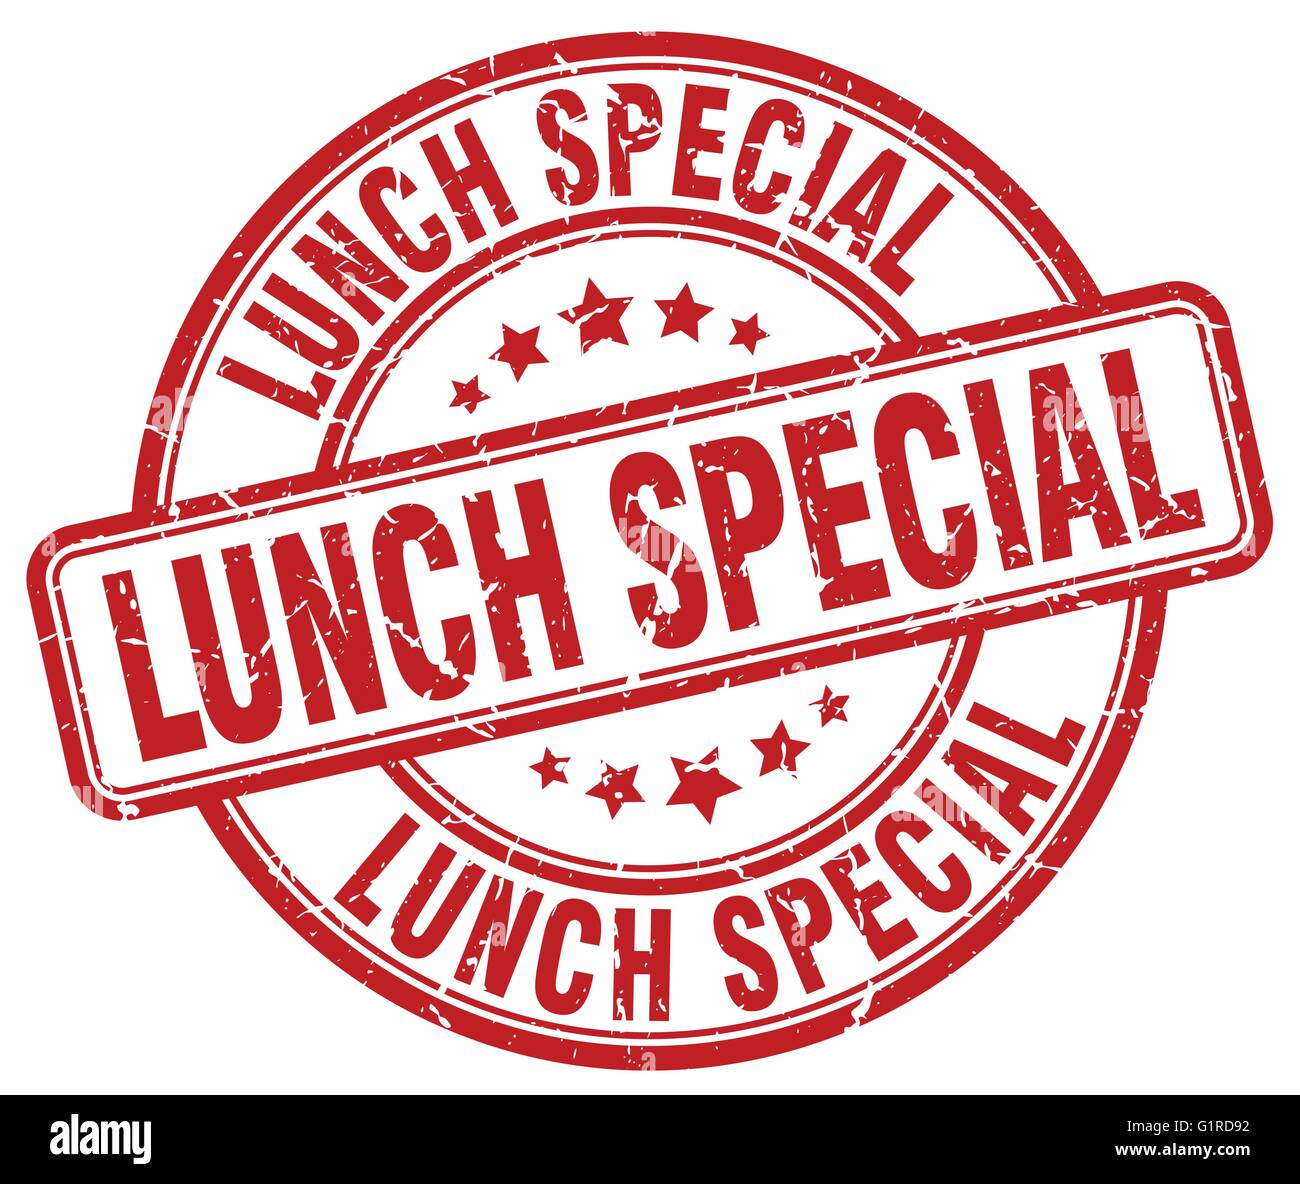 Lunch special red grunge round vintage rubber stamp stock for Lunch specials